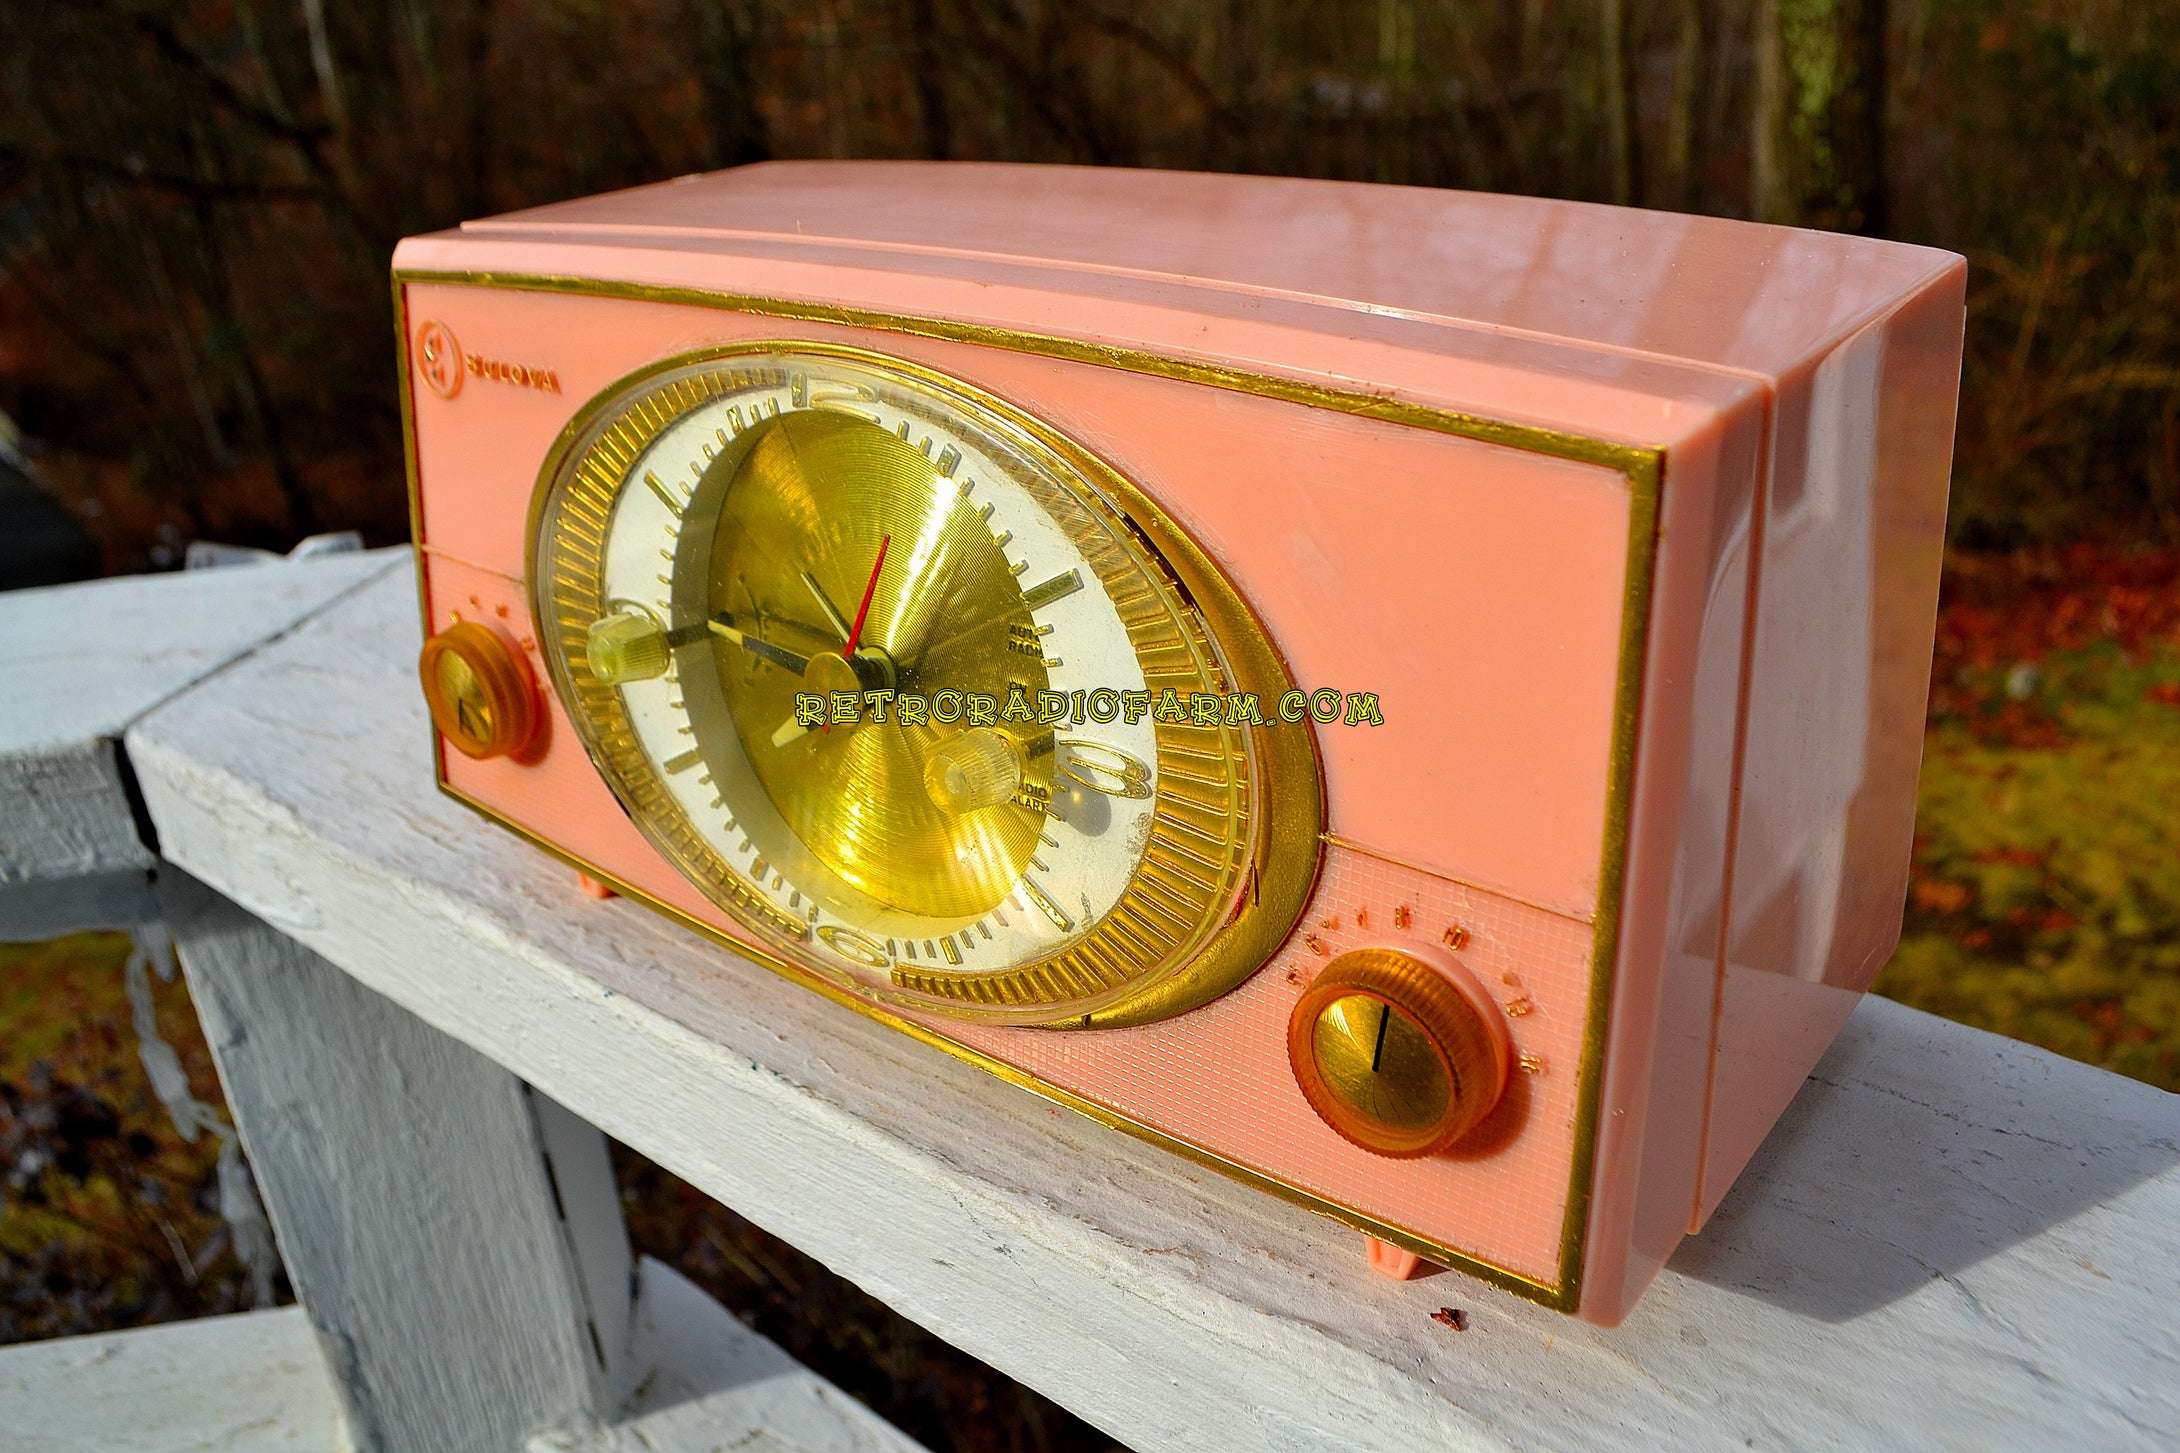 SOLD! - Dec 31, 2017 - PINK CYCLOPIC Vintage Mid Century Retro Jetsons 1957 Bulova Model 140 Tube AM Clock Radio WORKS! - [product_type} - Bulova - Retro Radio Farm